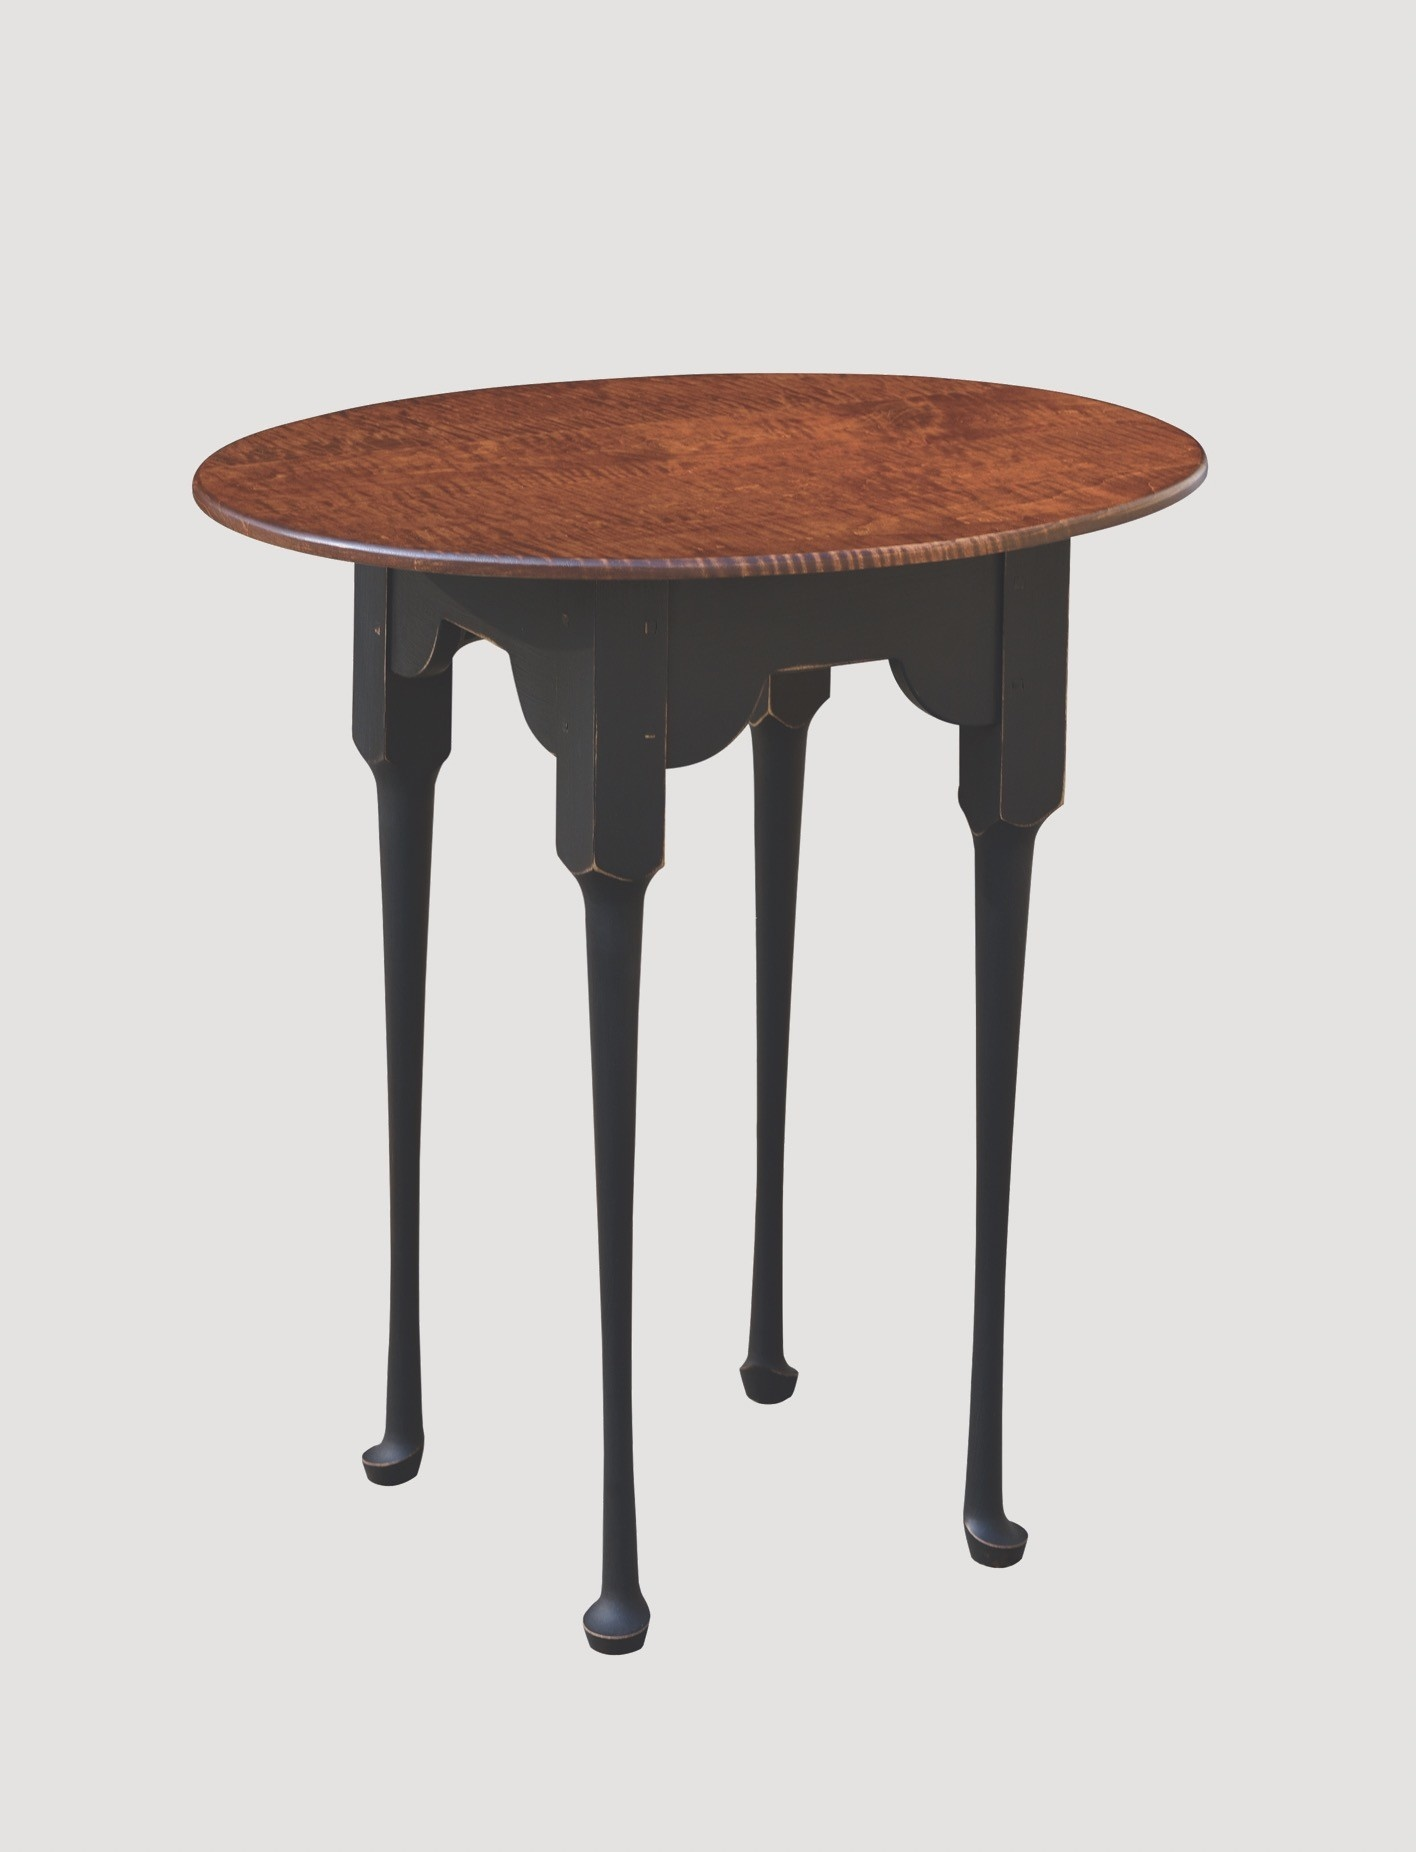 Primitive Designs Oval End Table with Tiger Maple Top